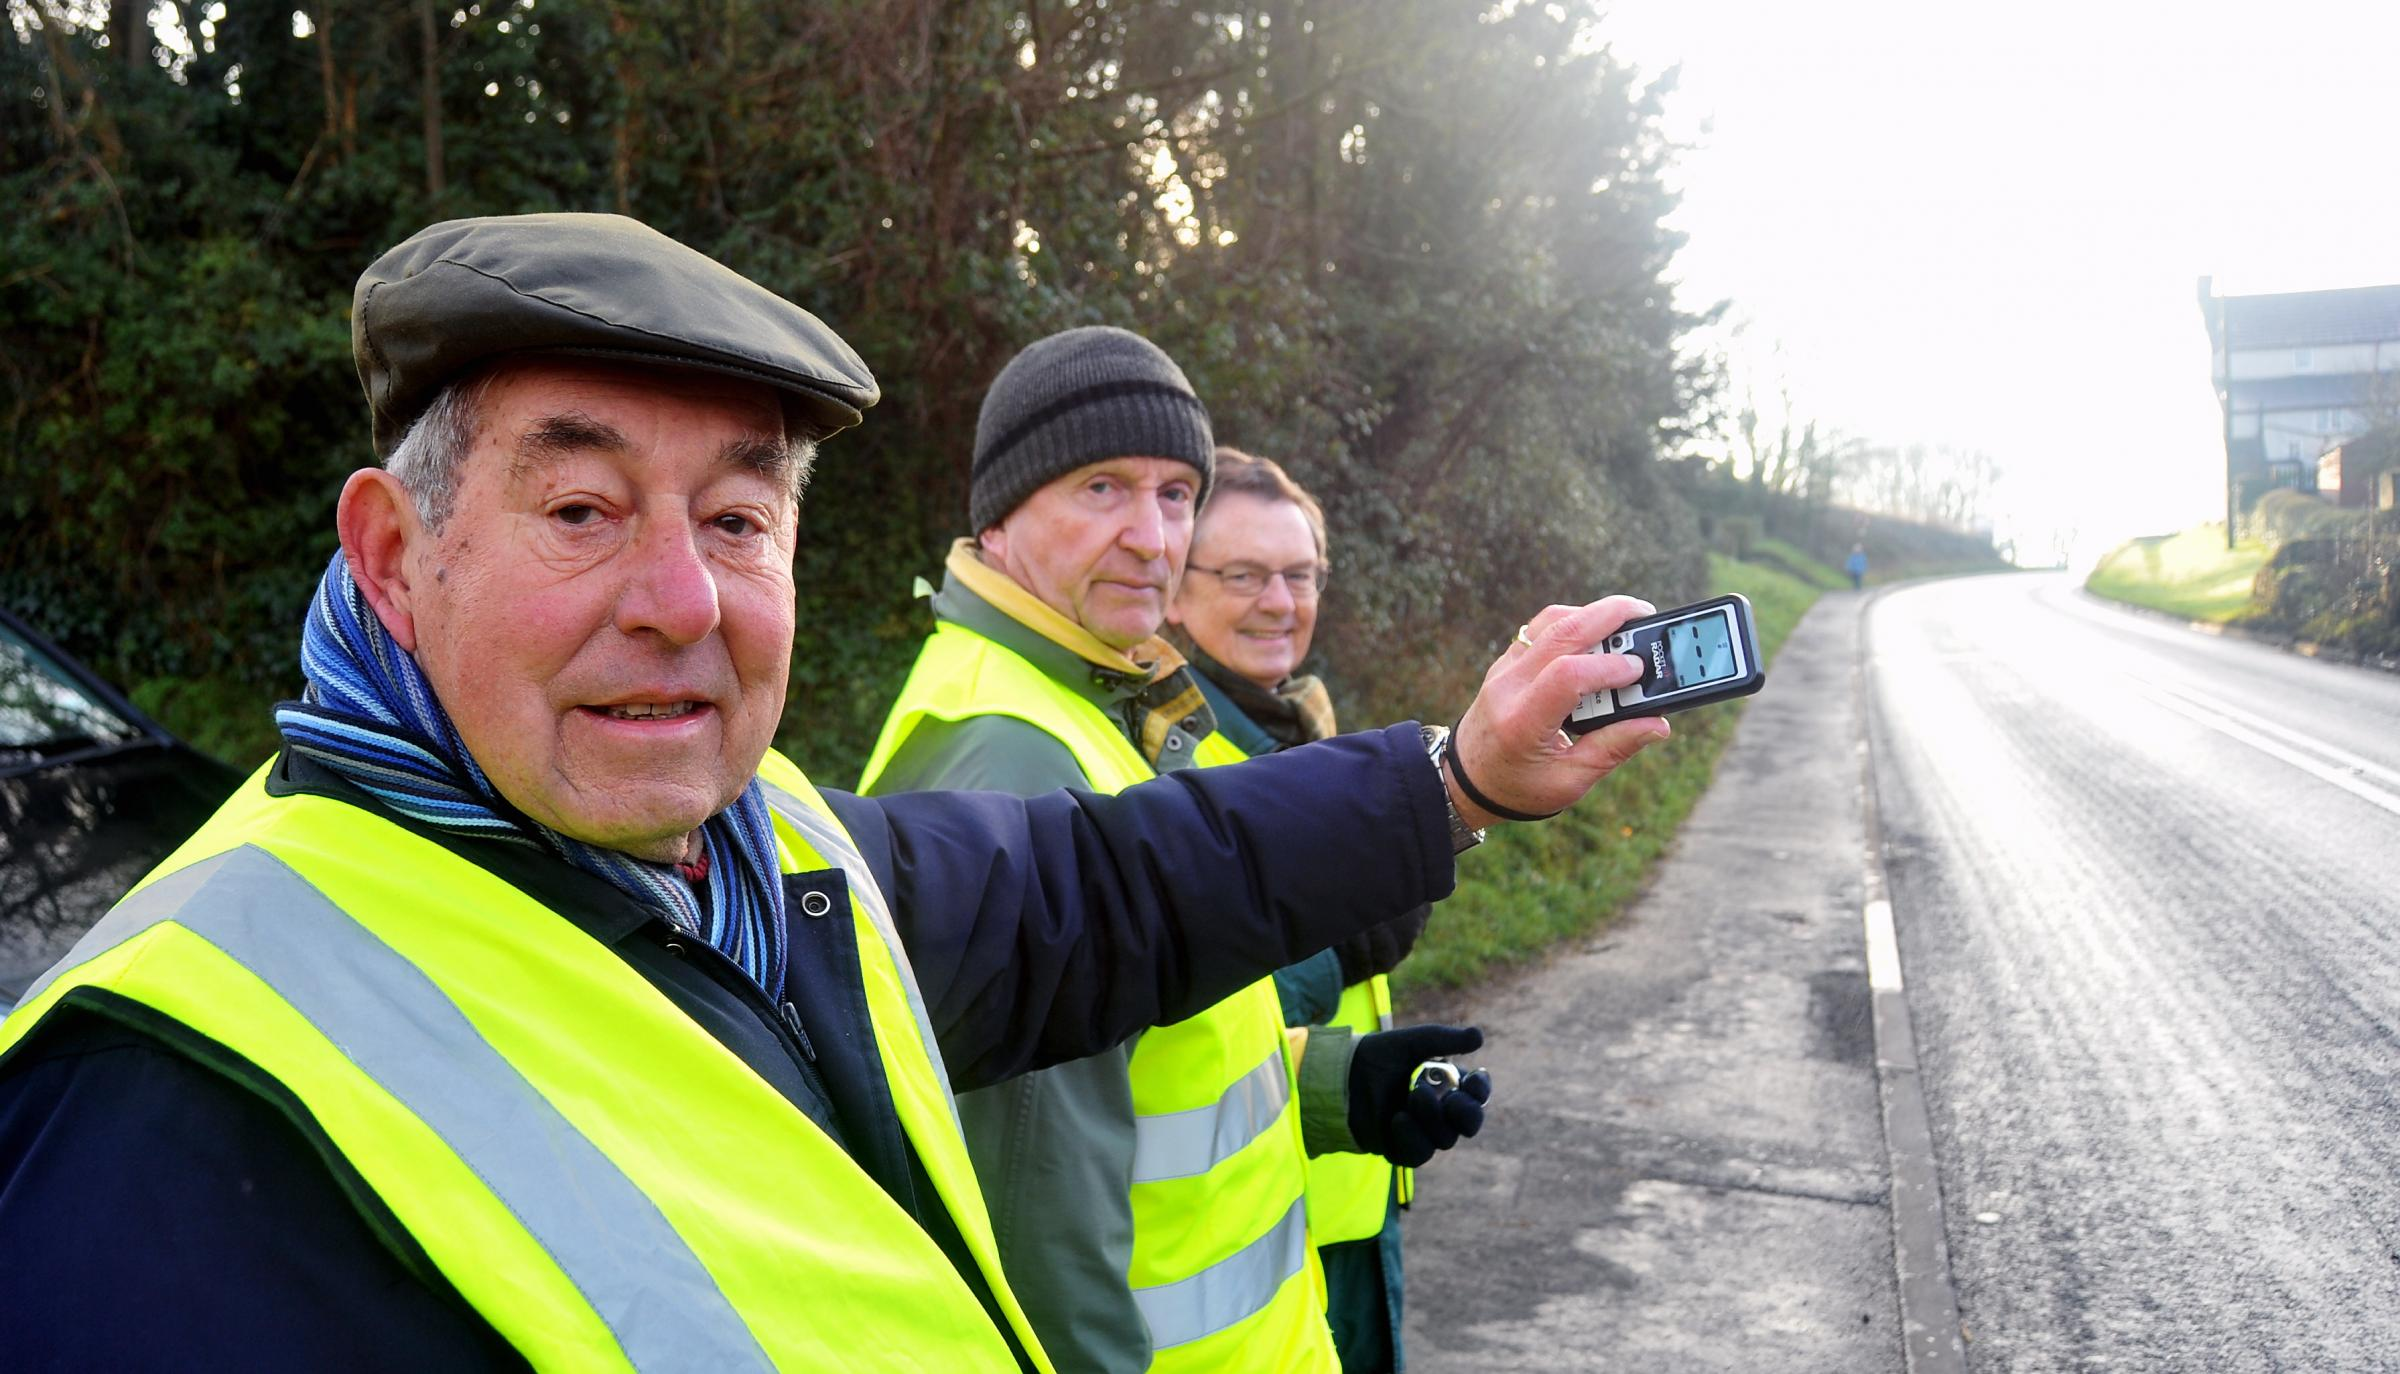 Cannington Speed Watch volunteers Brian Brin, Roy Pumfrey and George Pope. Photo: Jeff Searle.